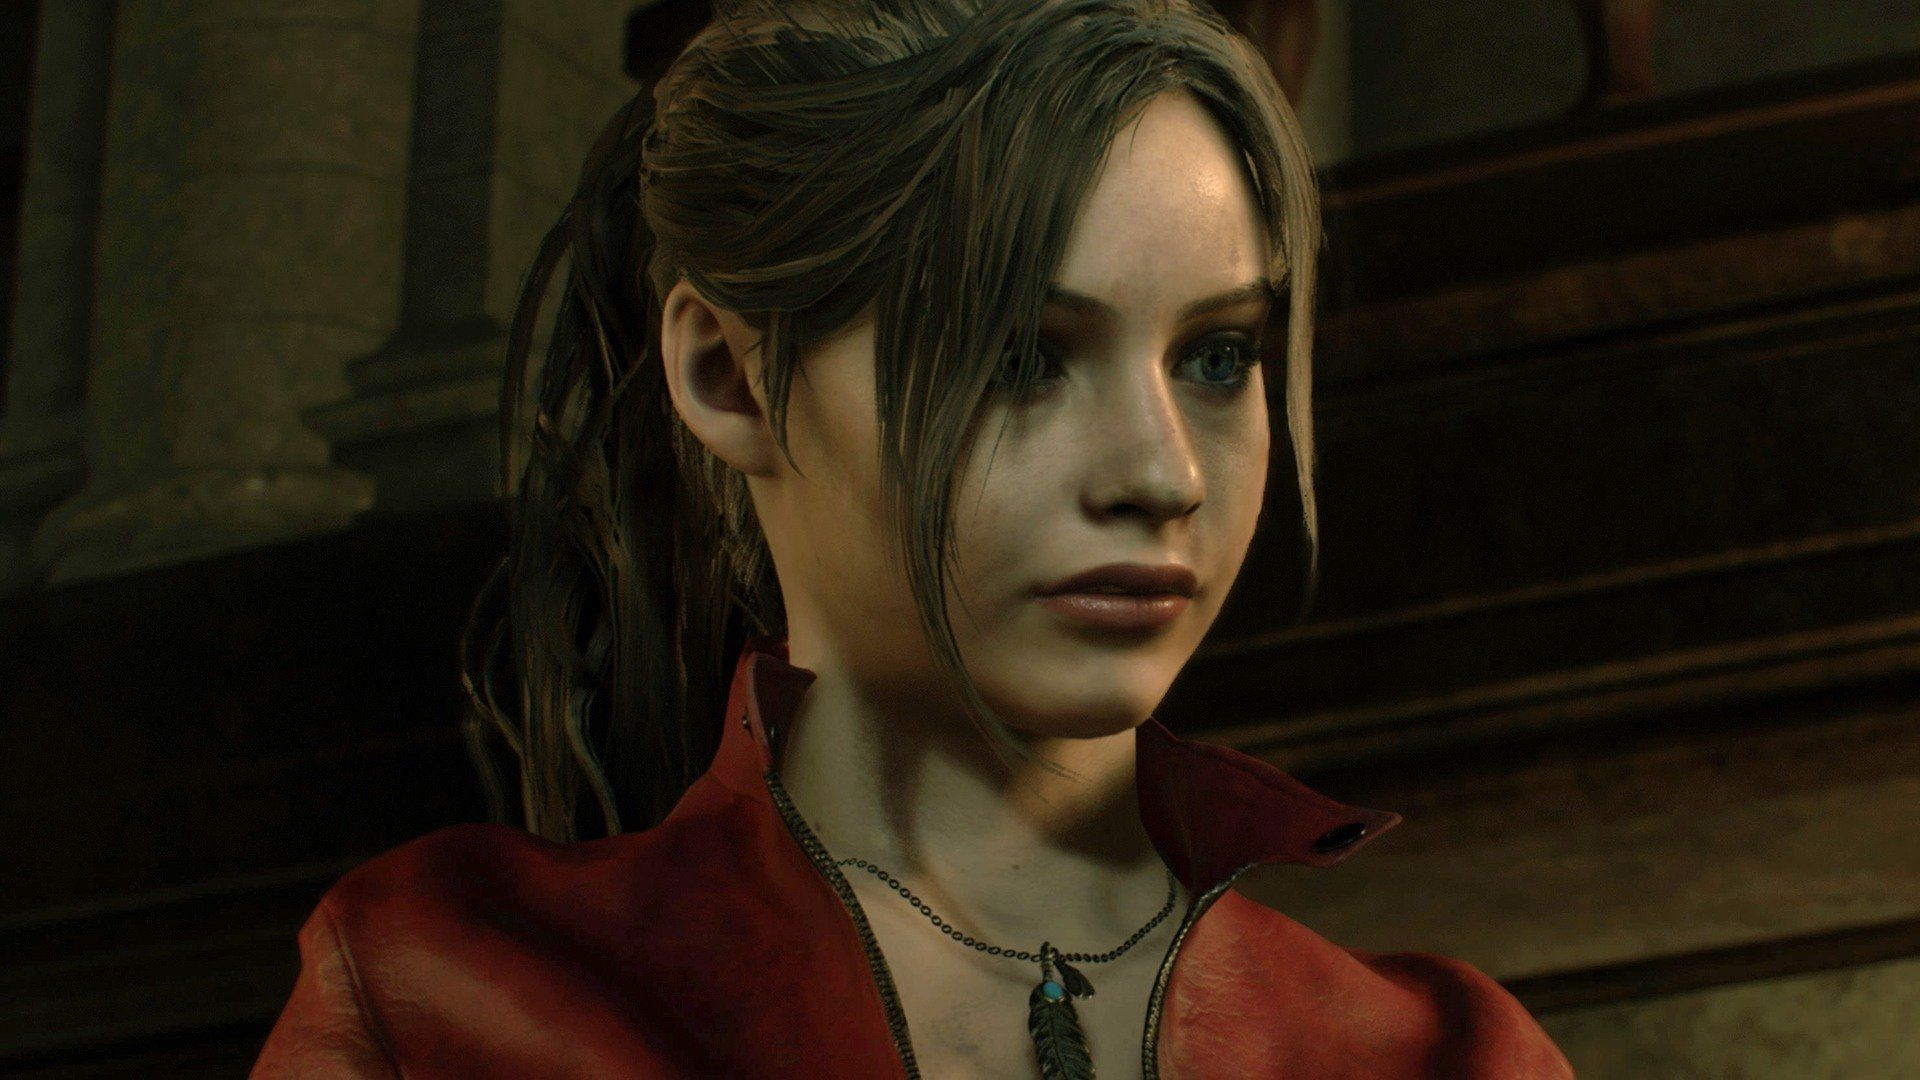 The First 15 Minutes Of Resident Evil 2 Gameplay Claire Redfield